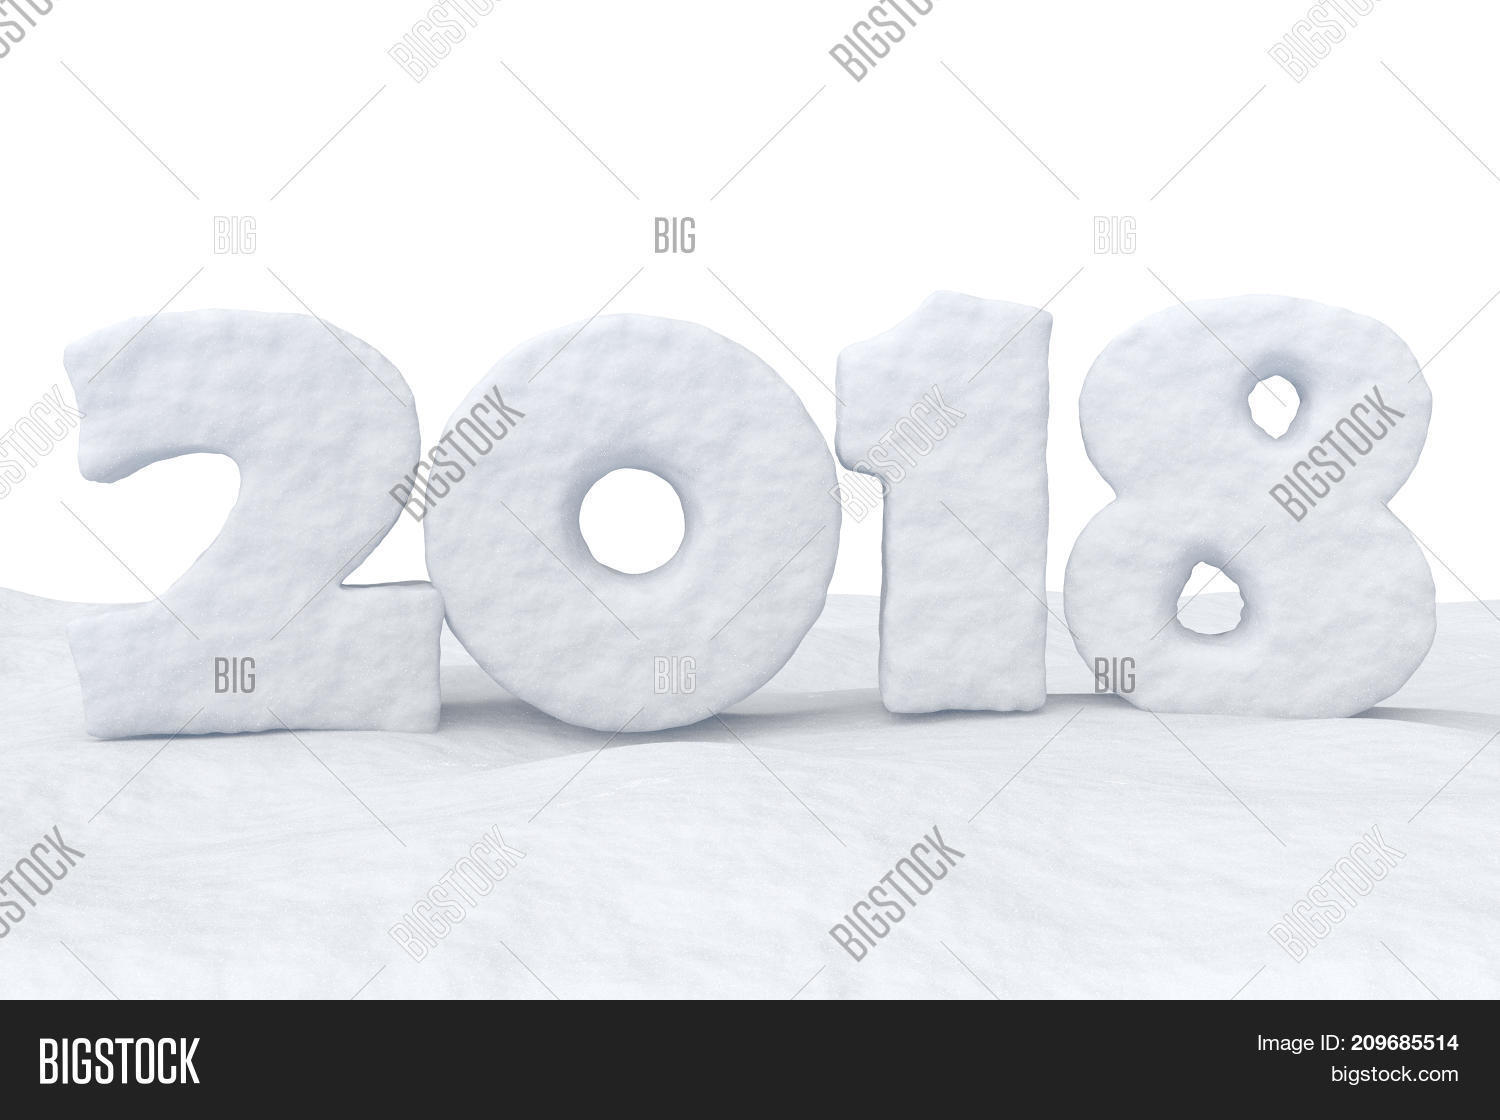 2018 New Year Sign Image Photo Free Trial Bigstock